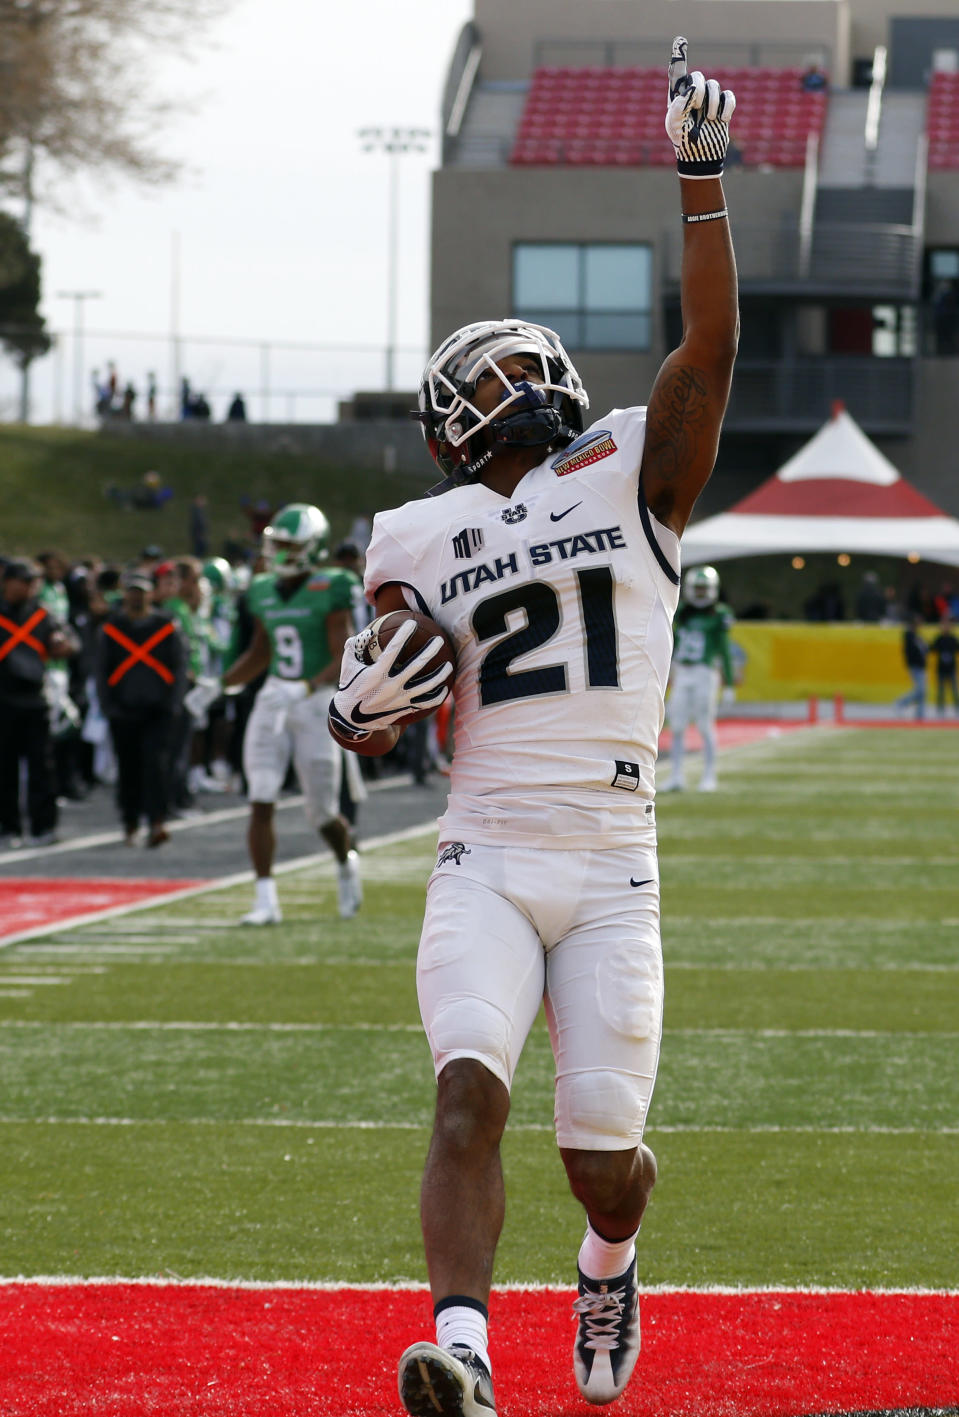 Utah State wide receiver Jalen Greene celebrates after scoring a touchdown against North Texas during the first half of the New Mexico Bowl NCAA college football game in Albuquerque, N.M., Saturday, Dec. 15, 2018. (AP Photo/Andres Leighton)